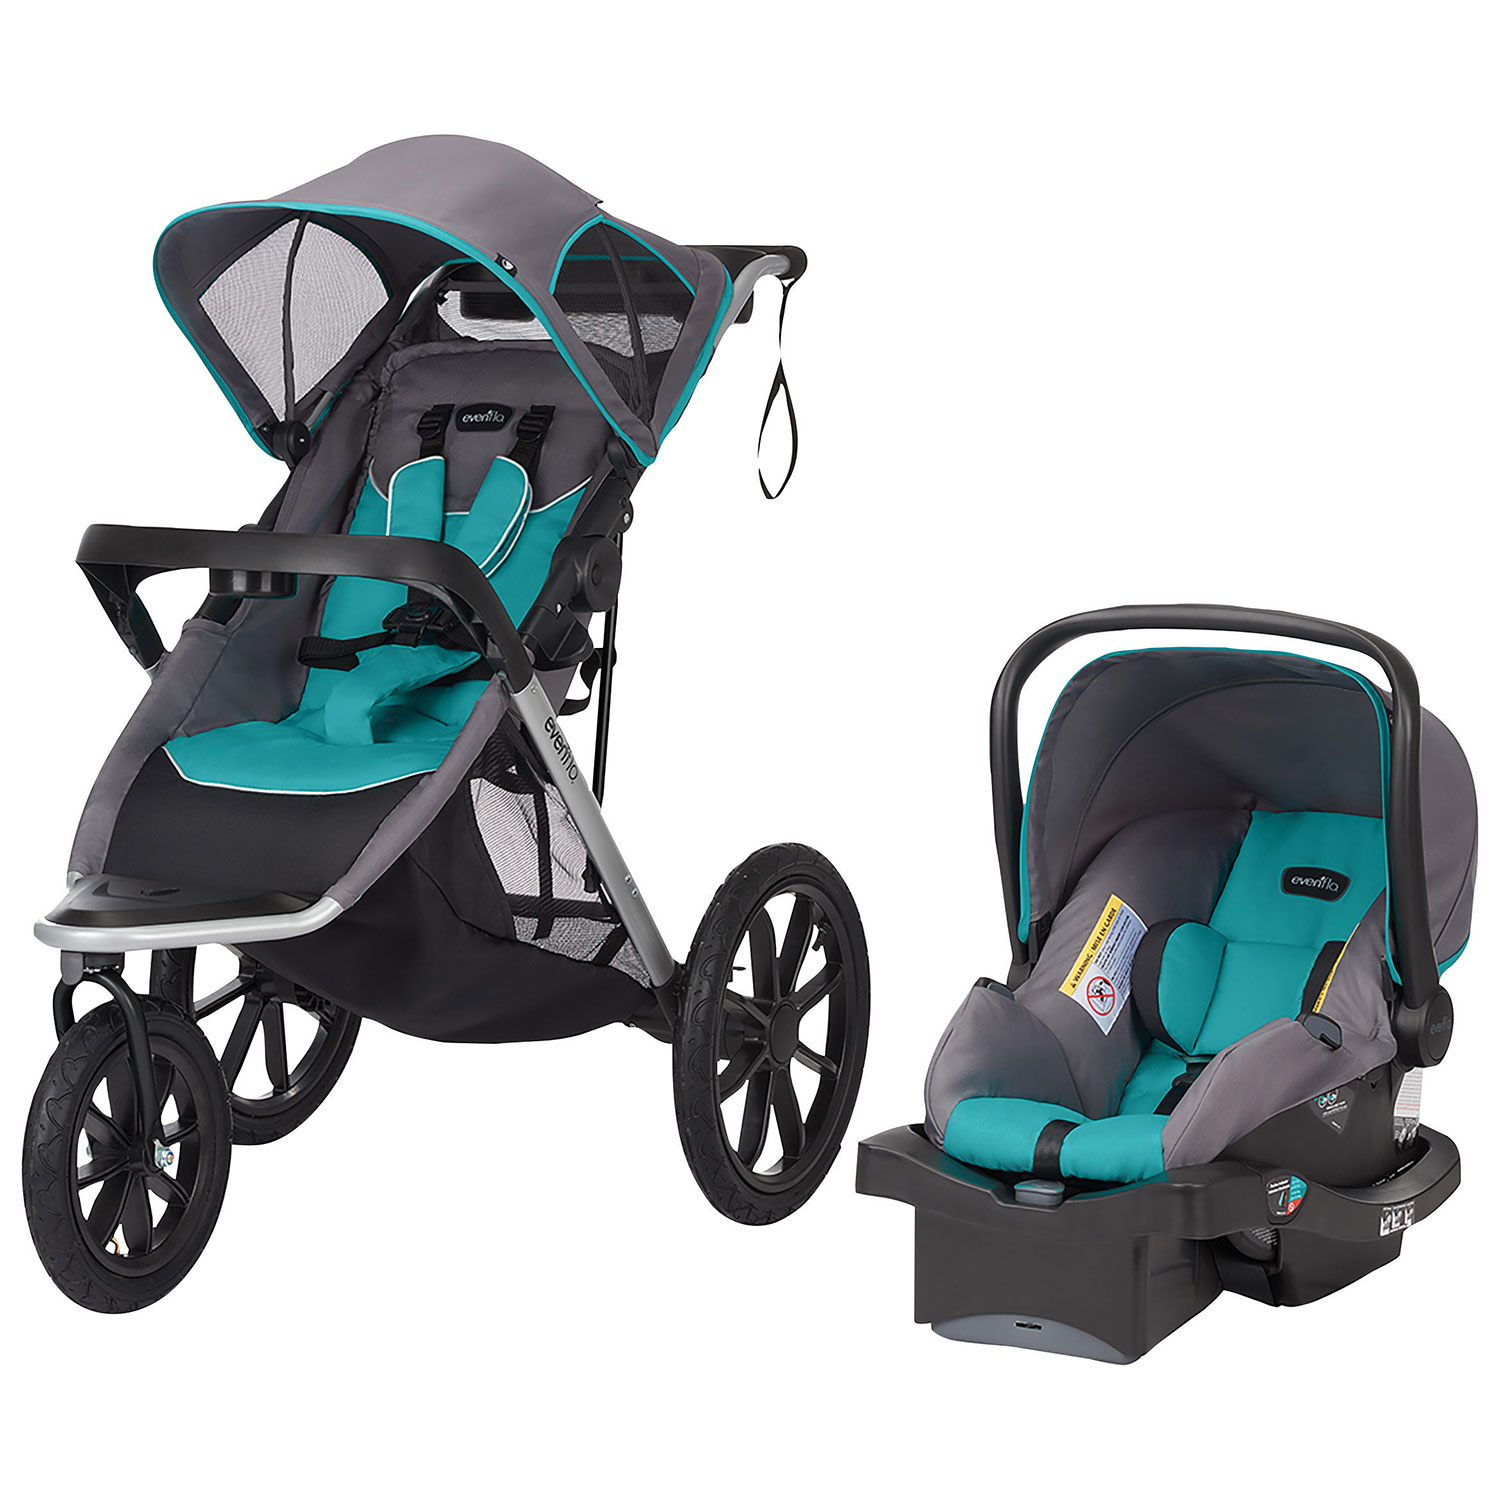 evenflo victory plus jogging stroller with litemax infant car seat  - evenflo victory plus jogging stroller with litemax infant car seat blackblue  baby travel systems  best buy canada